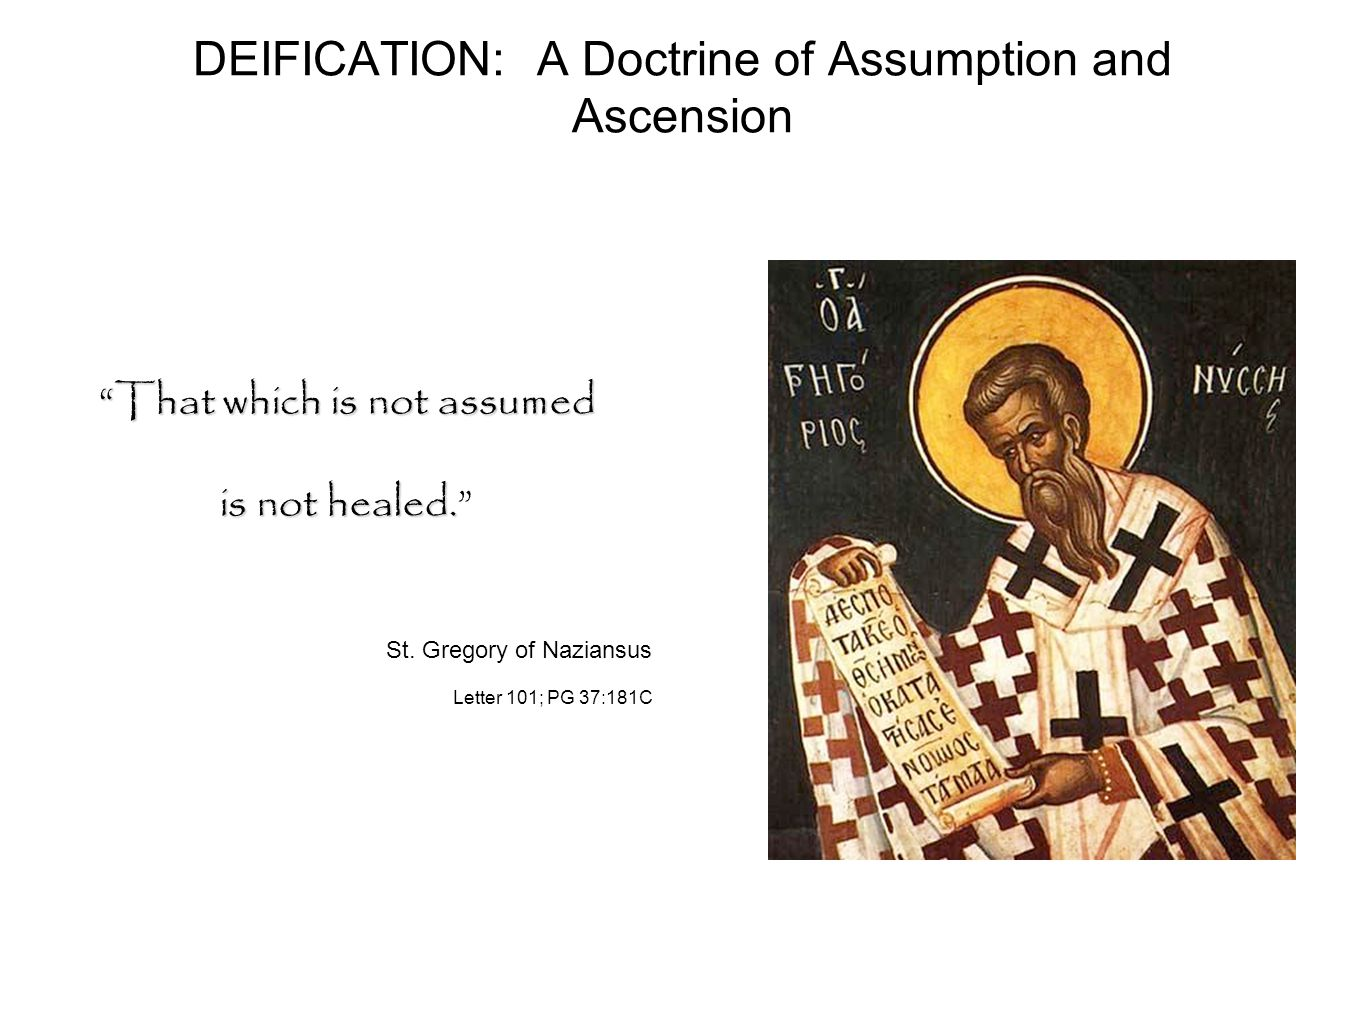 DEIFICATION: A Doctrine of Assumption and Ascension That which is not assumed is not healed.